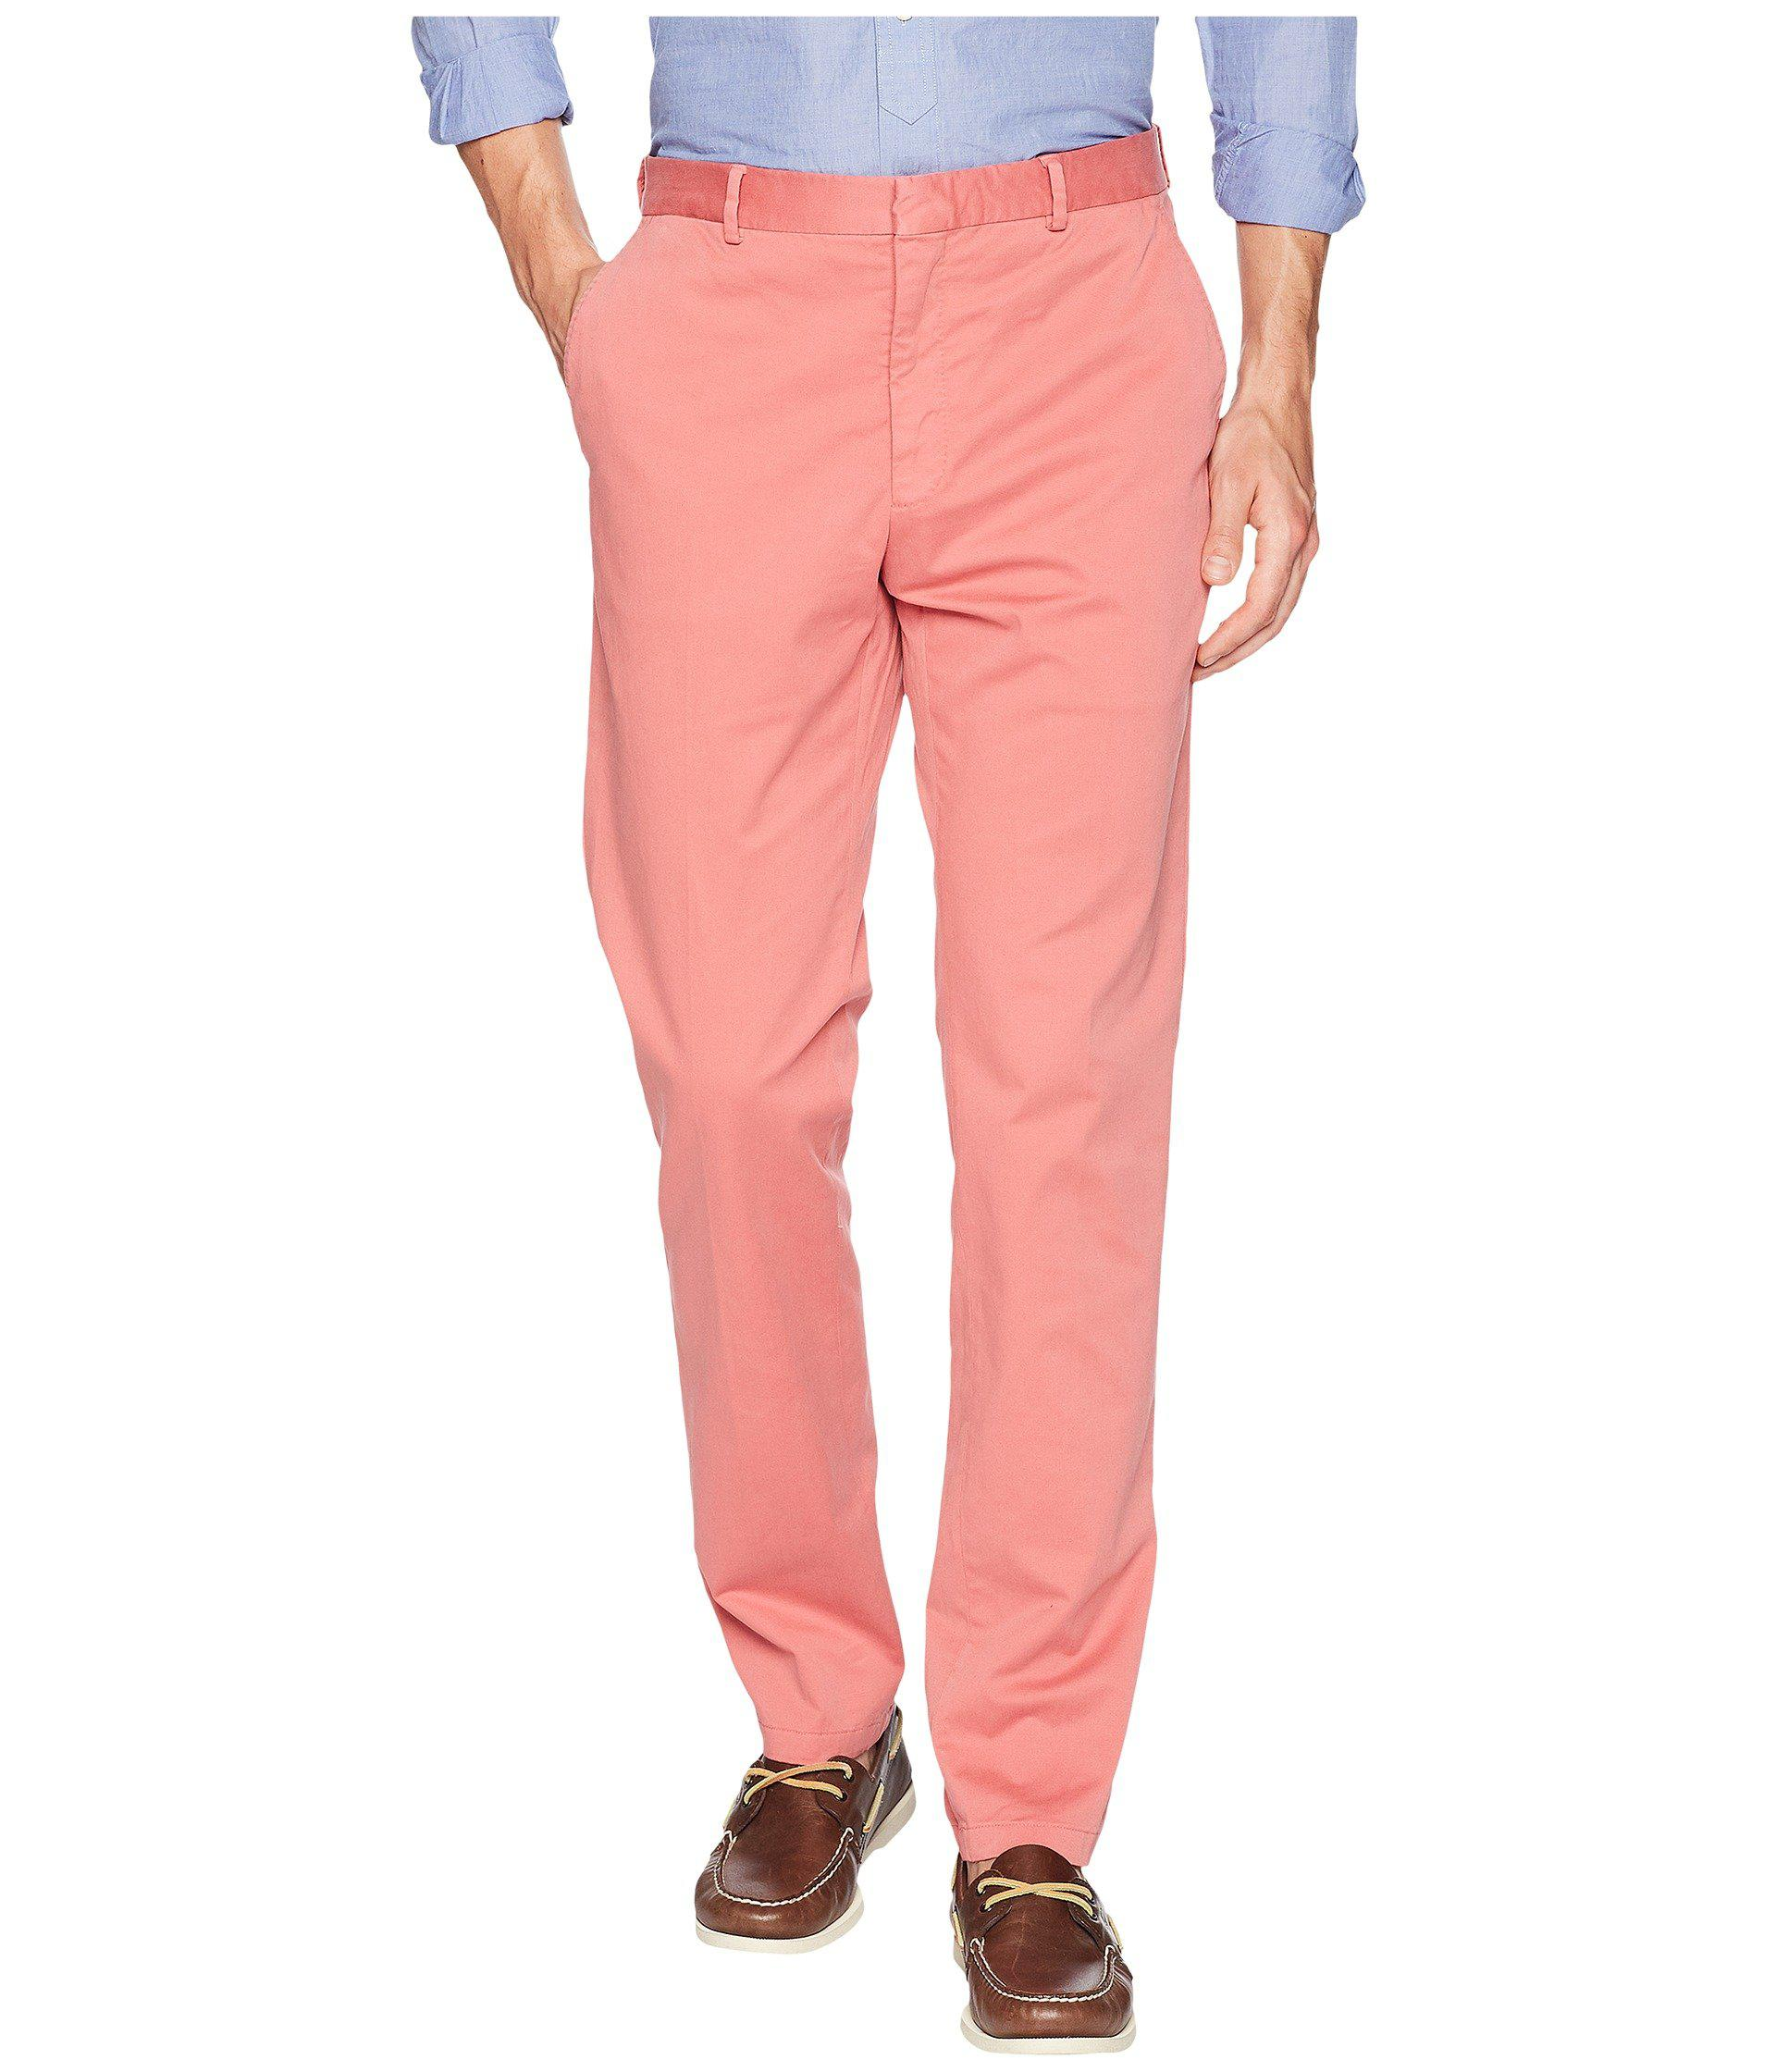 8b55dabe275d Lyst - Polo Ralph Lauren Garment Dyed Cotton Stretch Trousers in Red ...